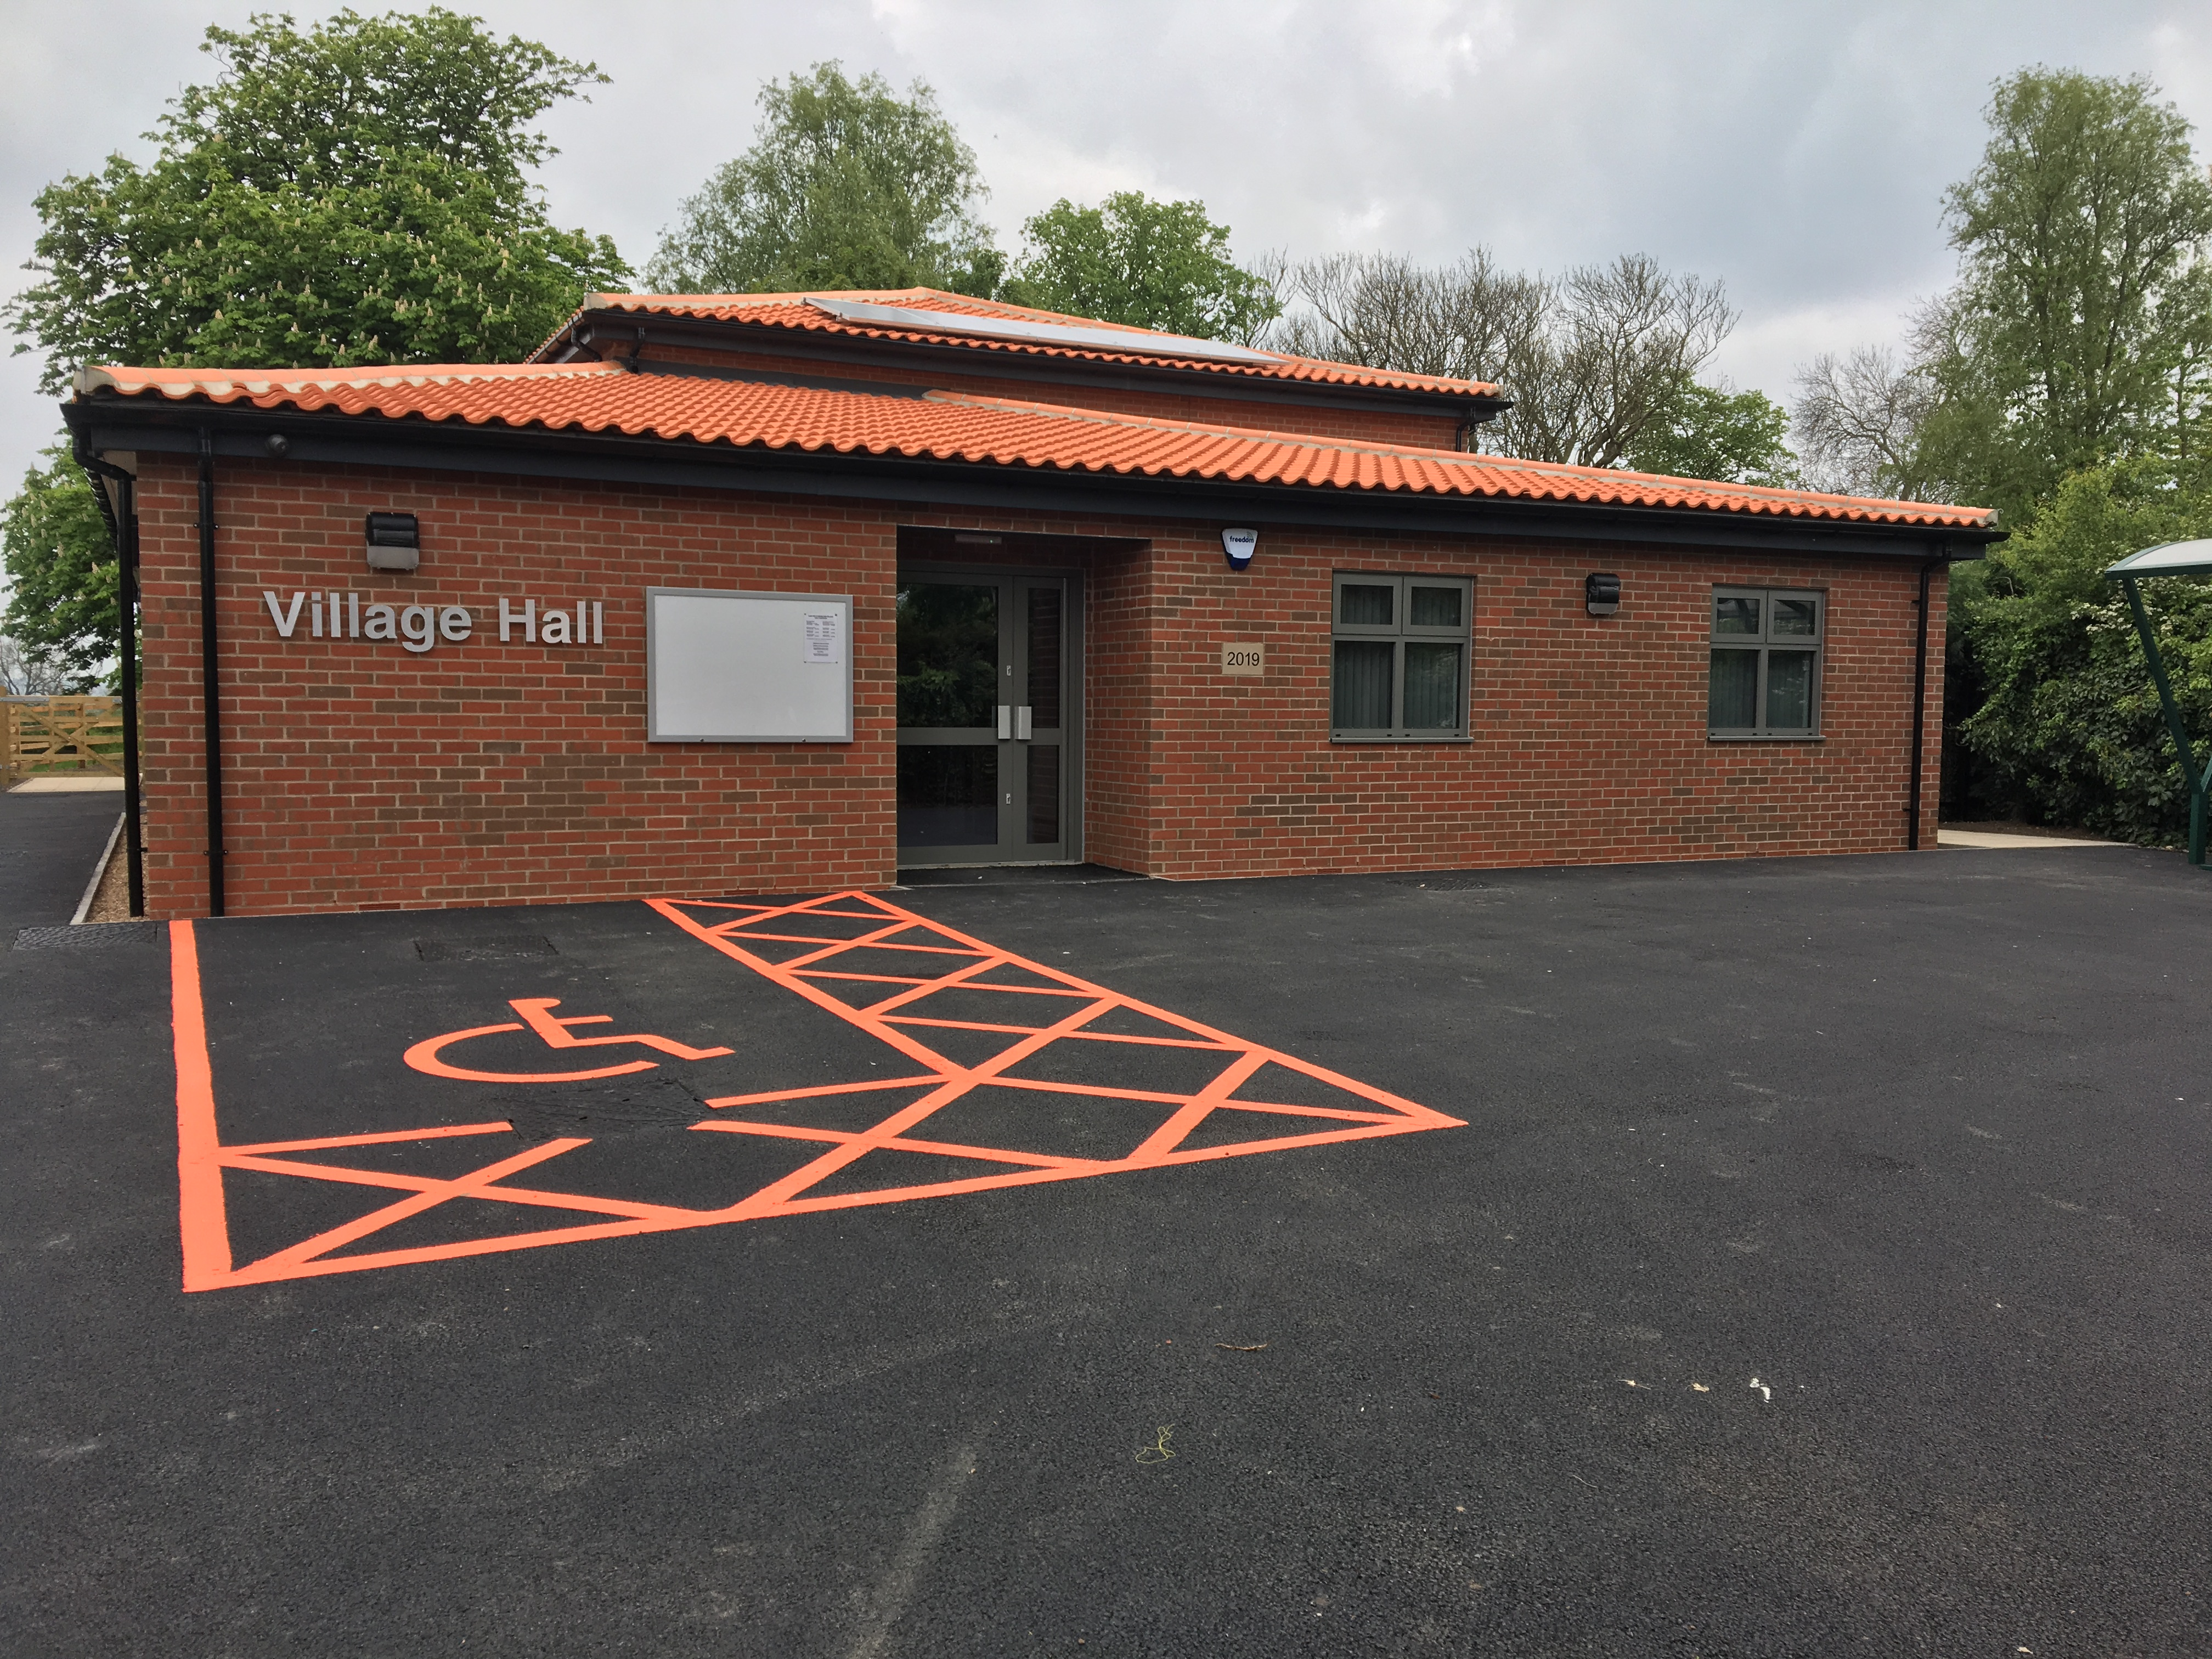 Carlton le Moorland Village Hall